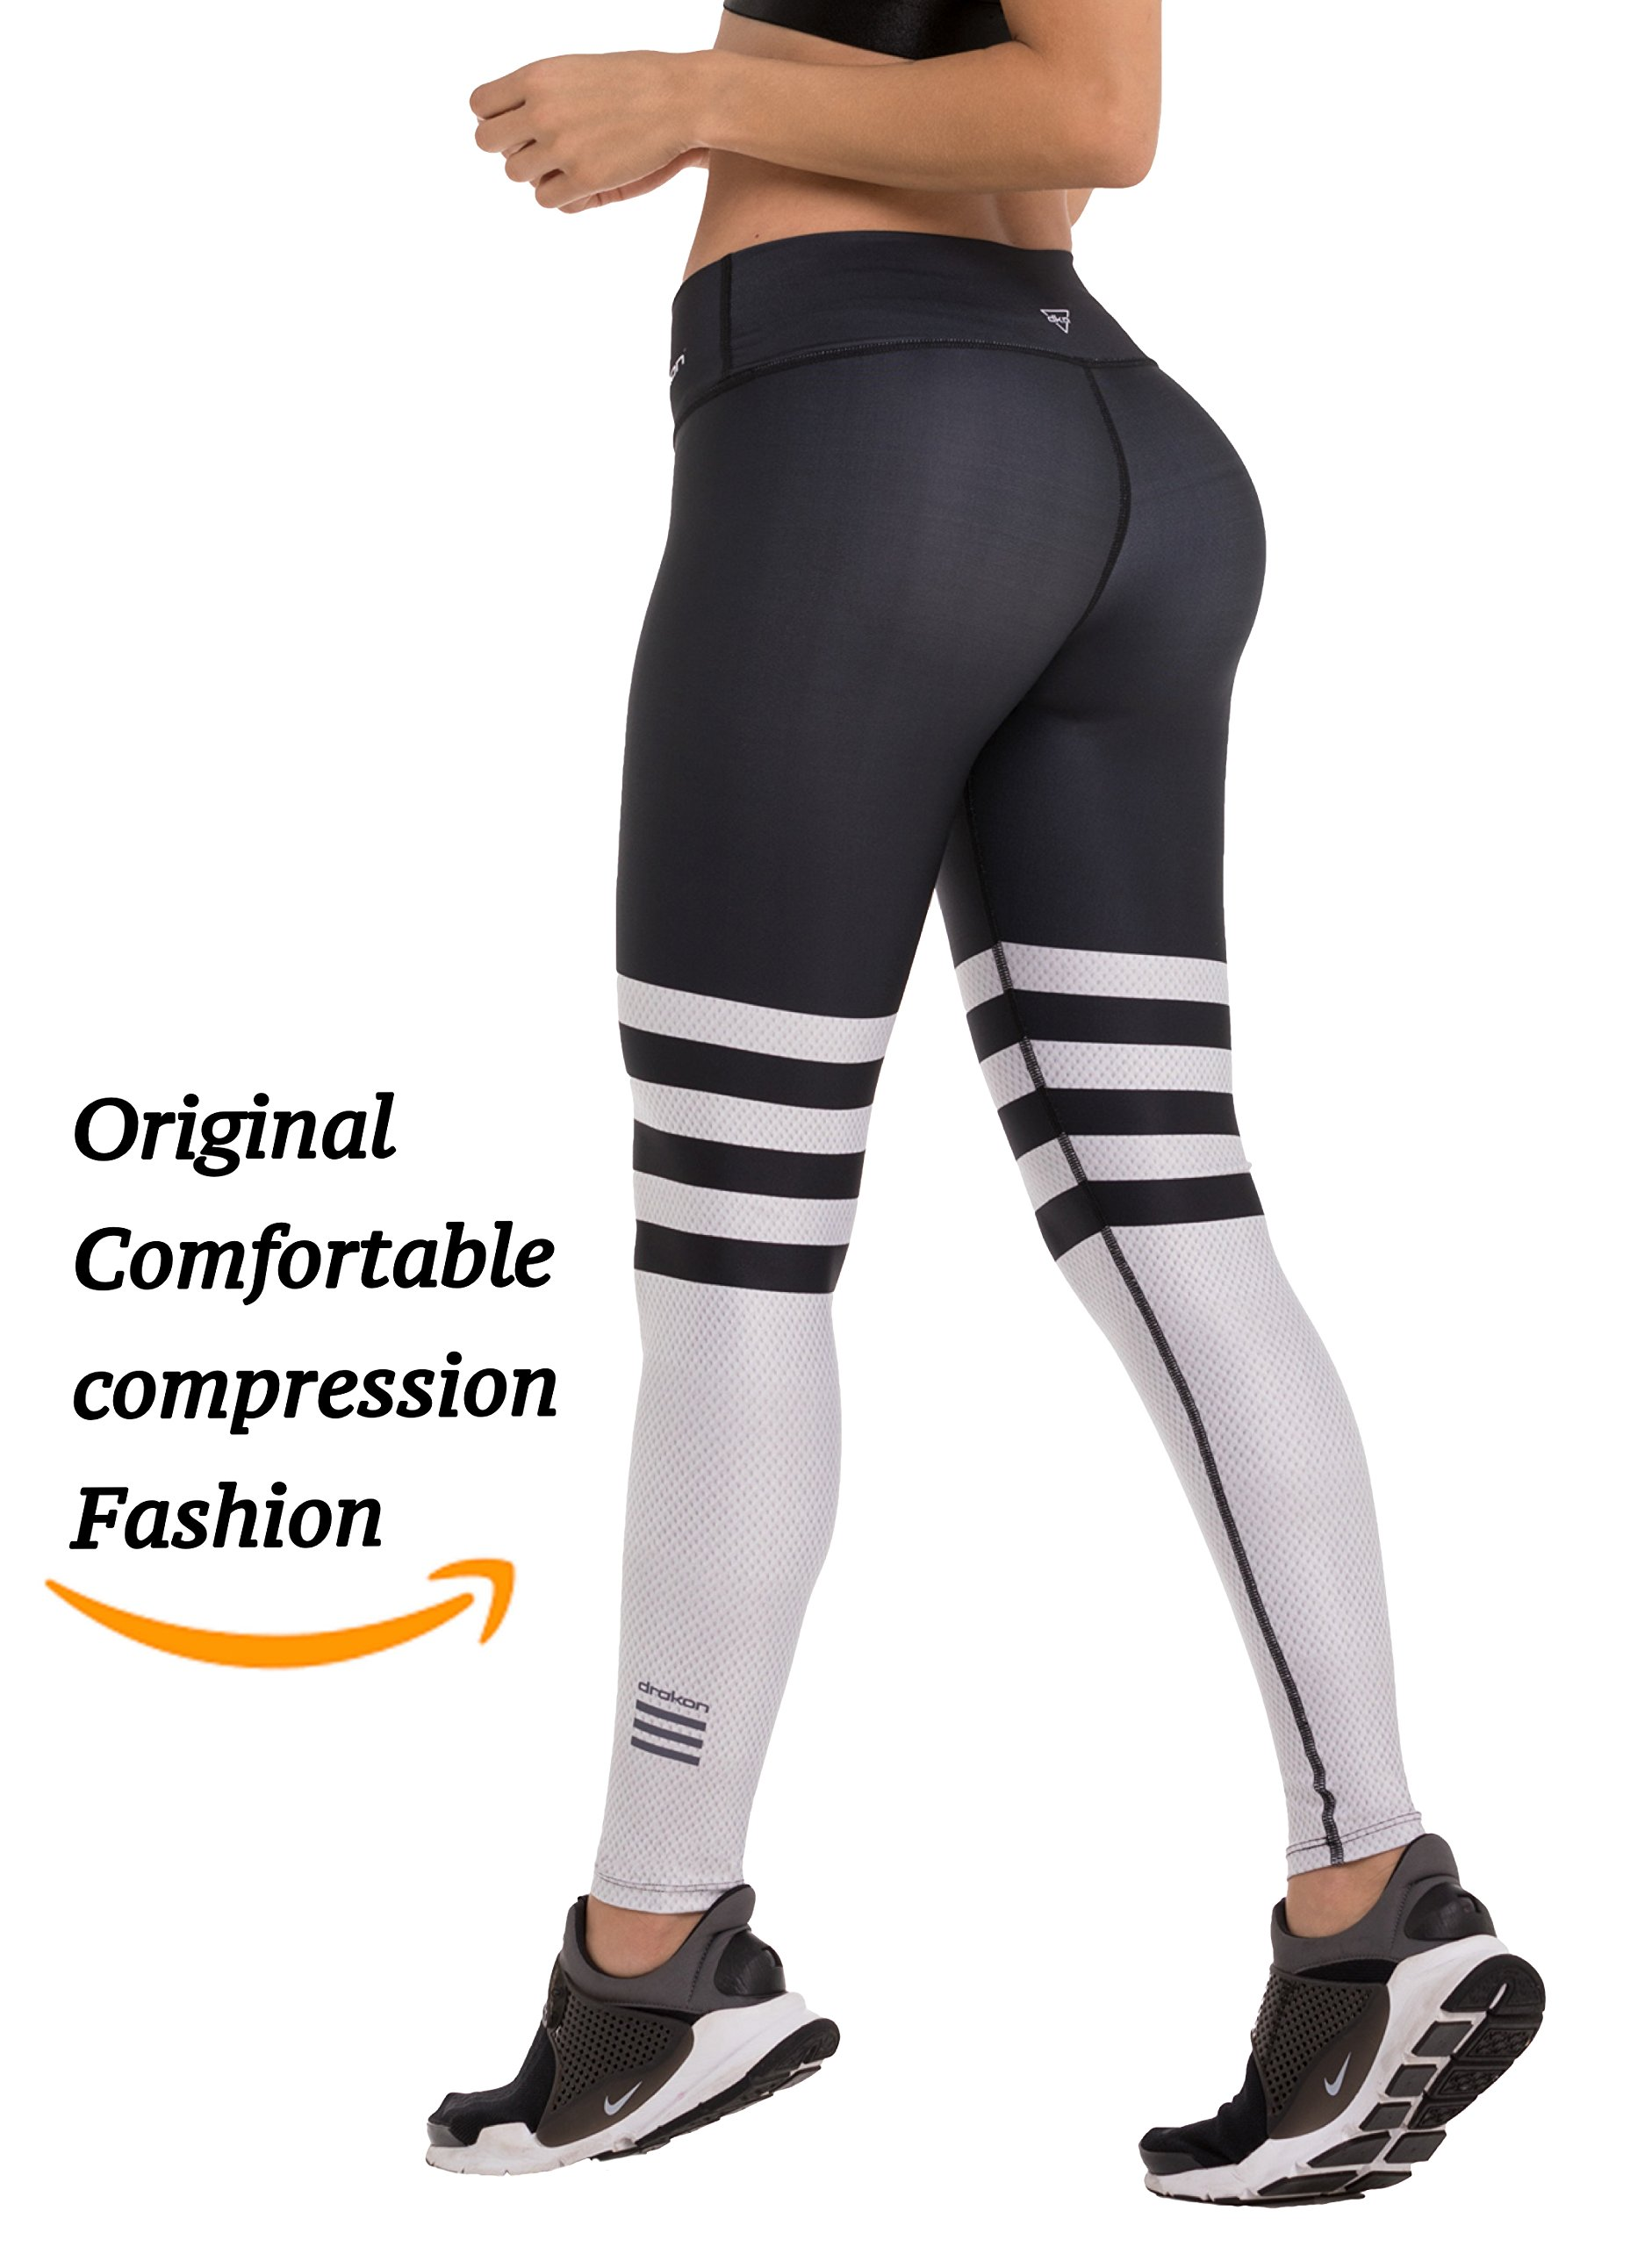 Drakon Many Styles Of Crossfit Leggings Women Colombian Yoga Pants Compression Tights (Black White),One Size